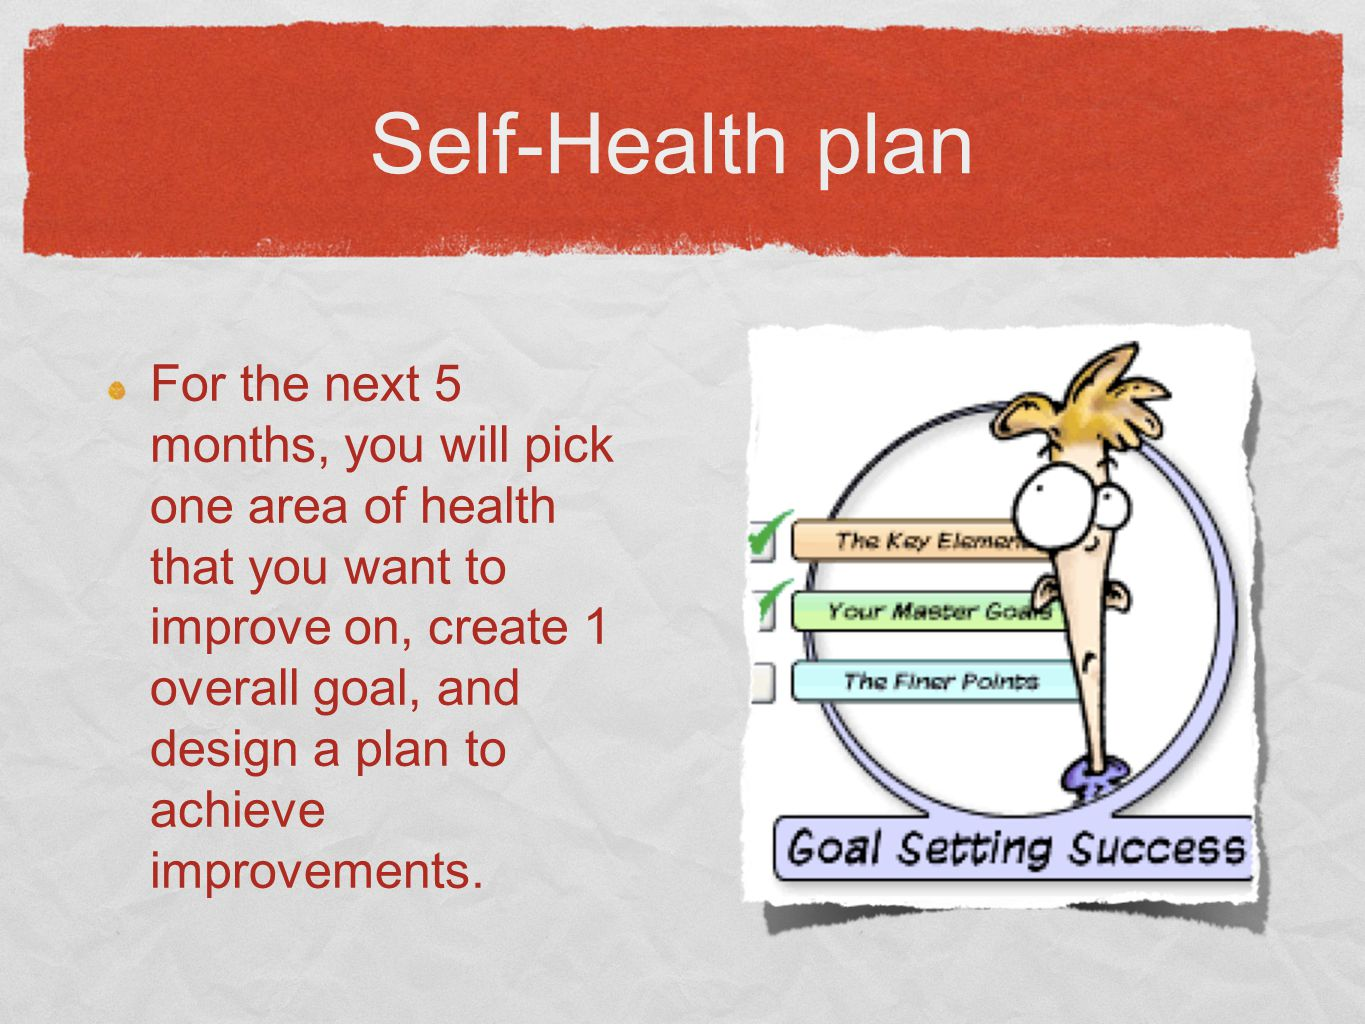 Self-Health plan For the next 5 months, you will pick one area of health that you want to improve on, create 1 overall goal, and design a plan to achieve improvements.